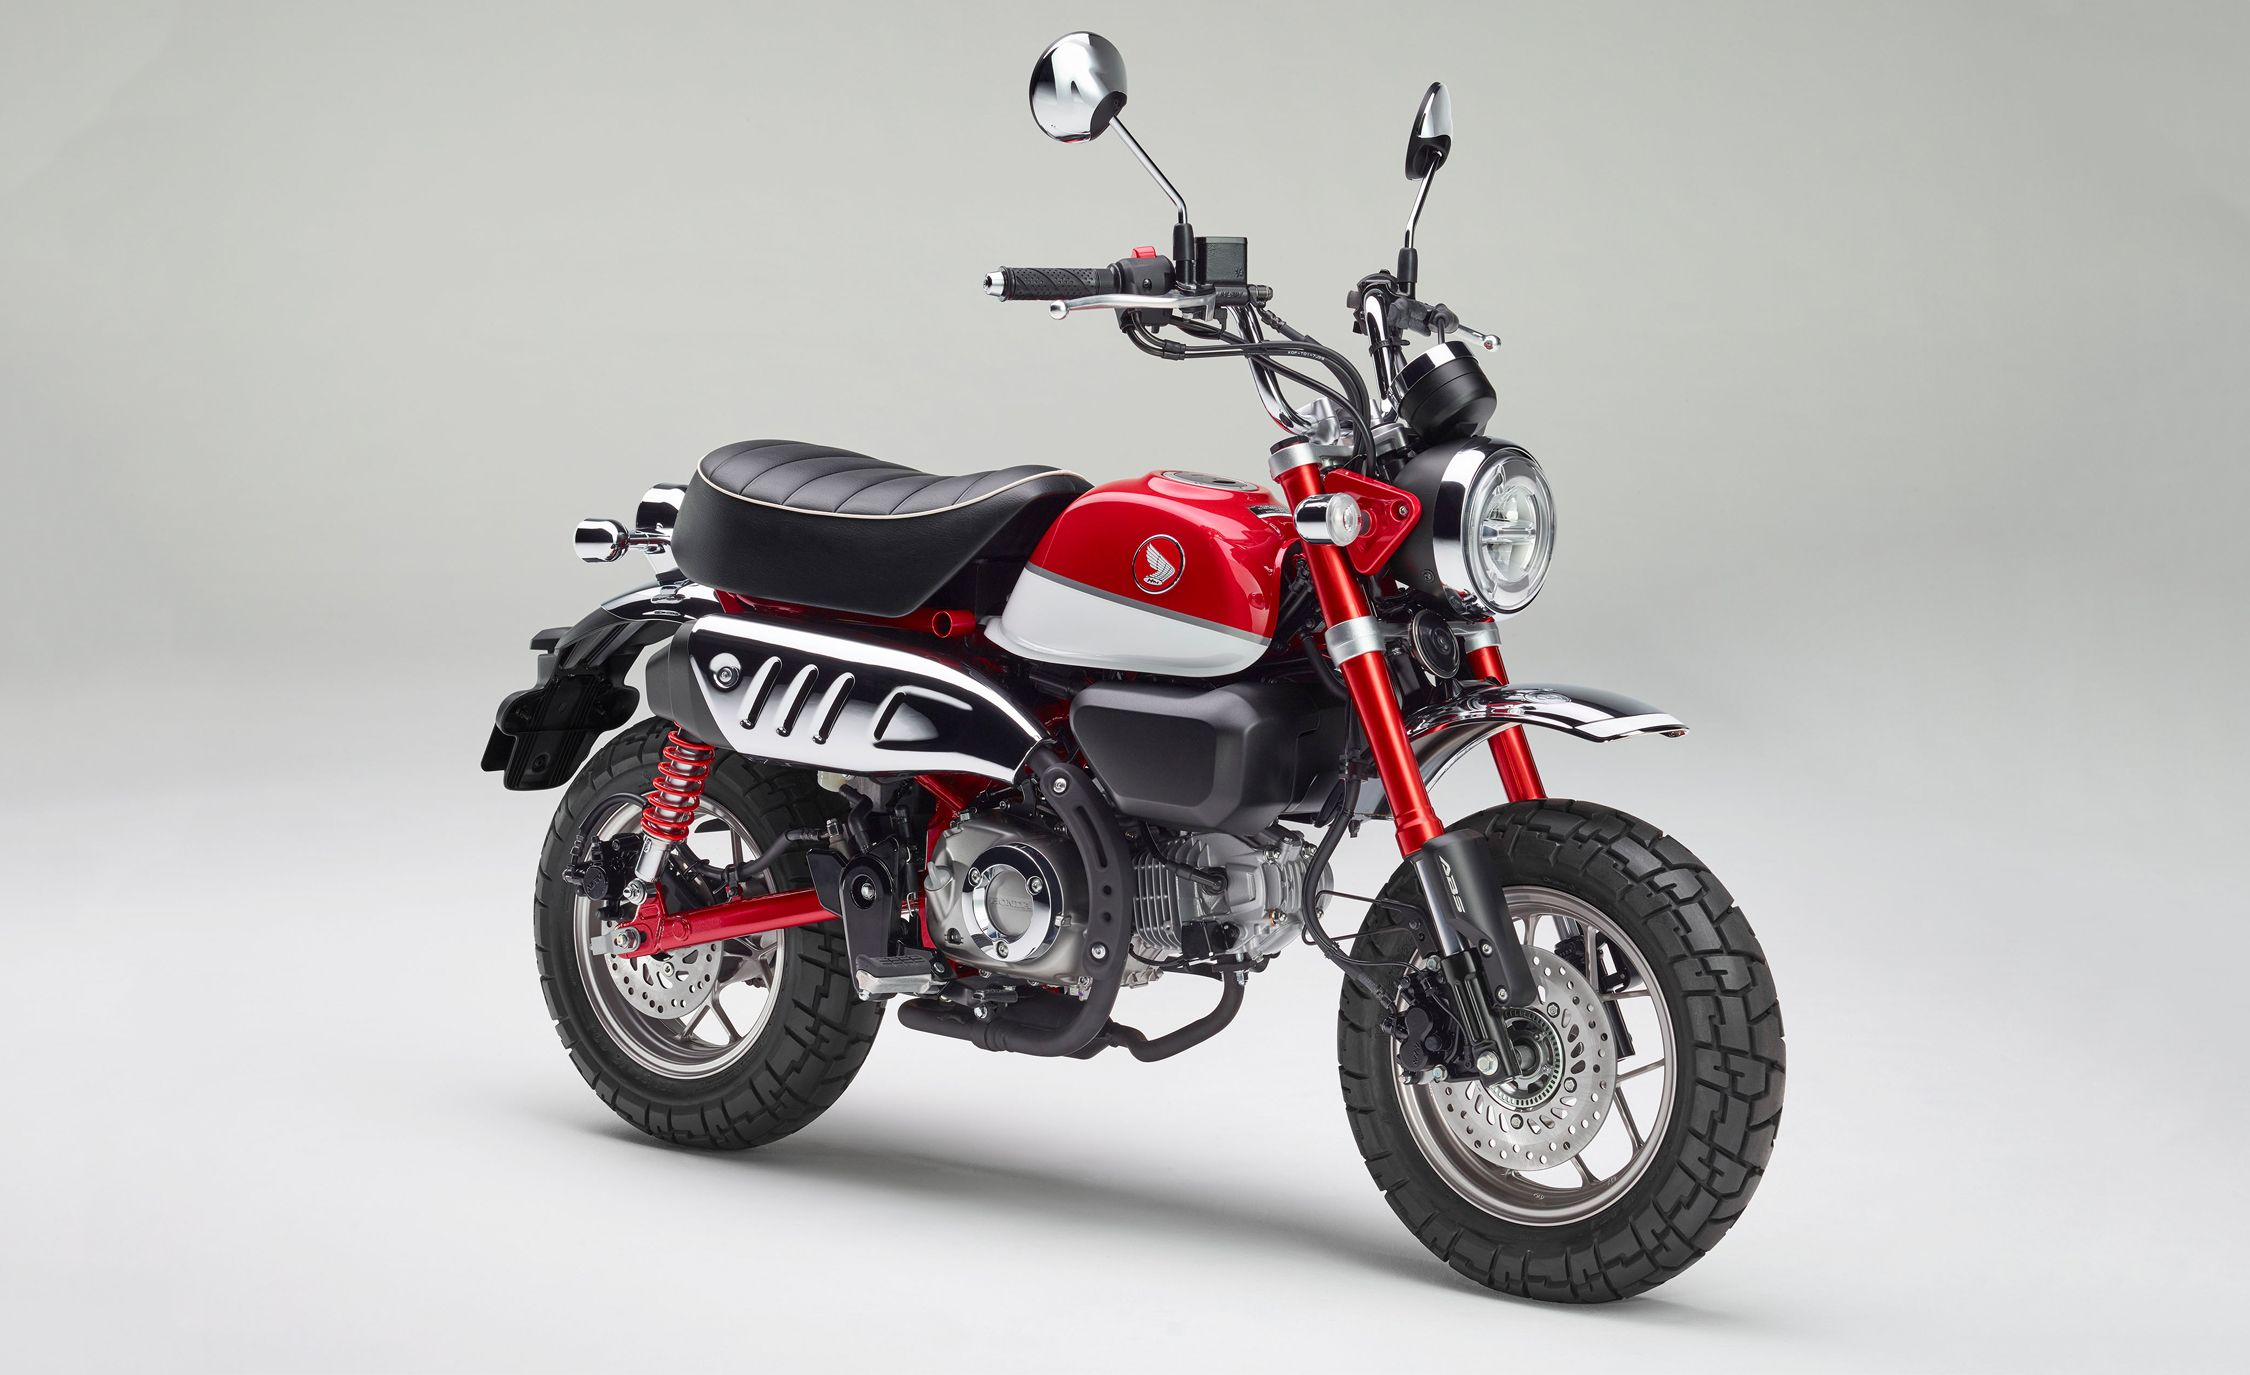 Used Honda Motorcycles >> Honda Is Bringing Super Cub and Monkey Motorcycles Back to the U.S. | News | Car and Driver